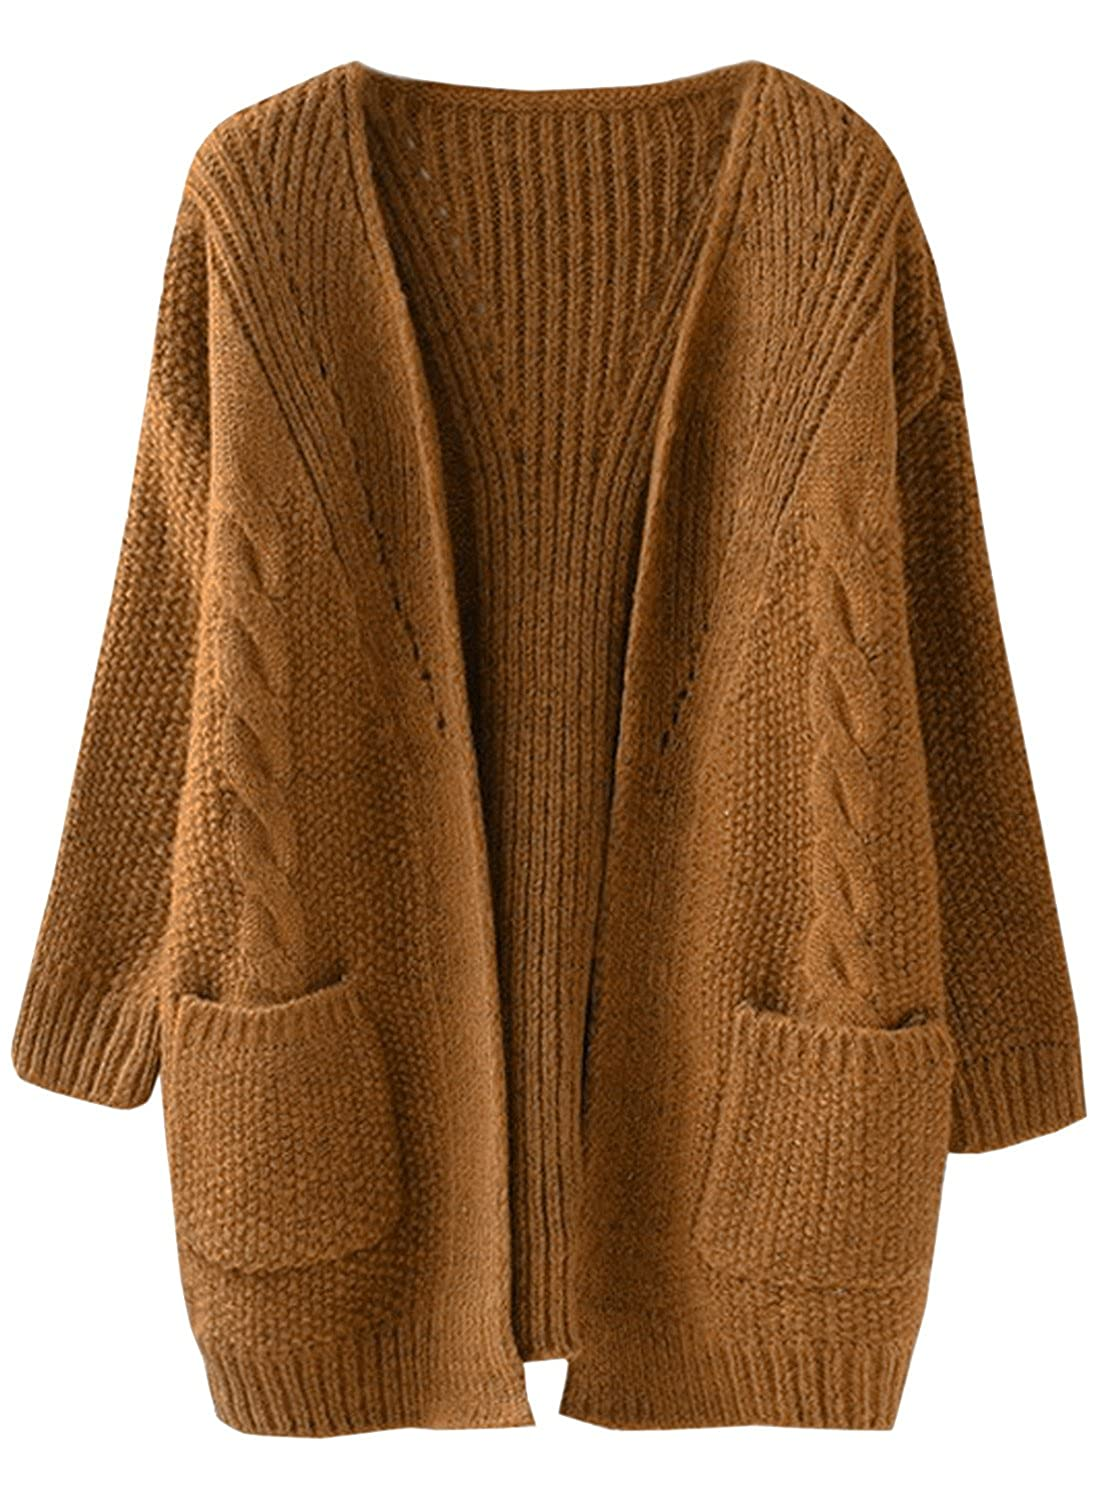 Futurino Women's Cable Knitted Boyfriend Pocket Open Front Cardigan